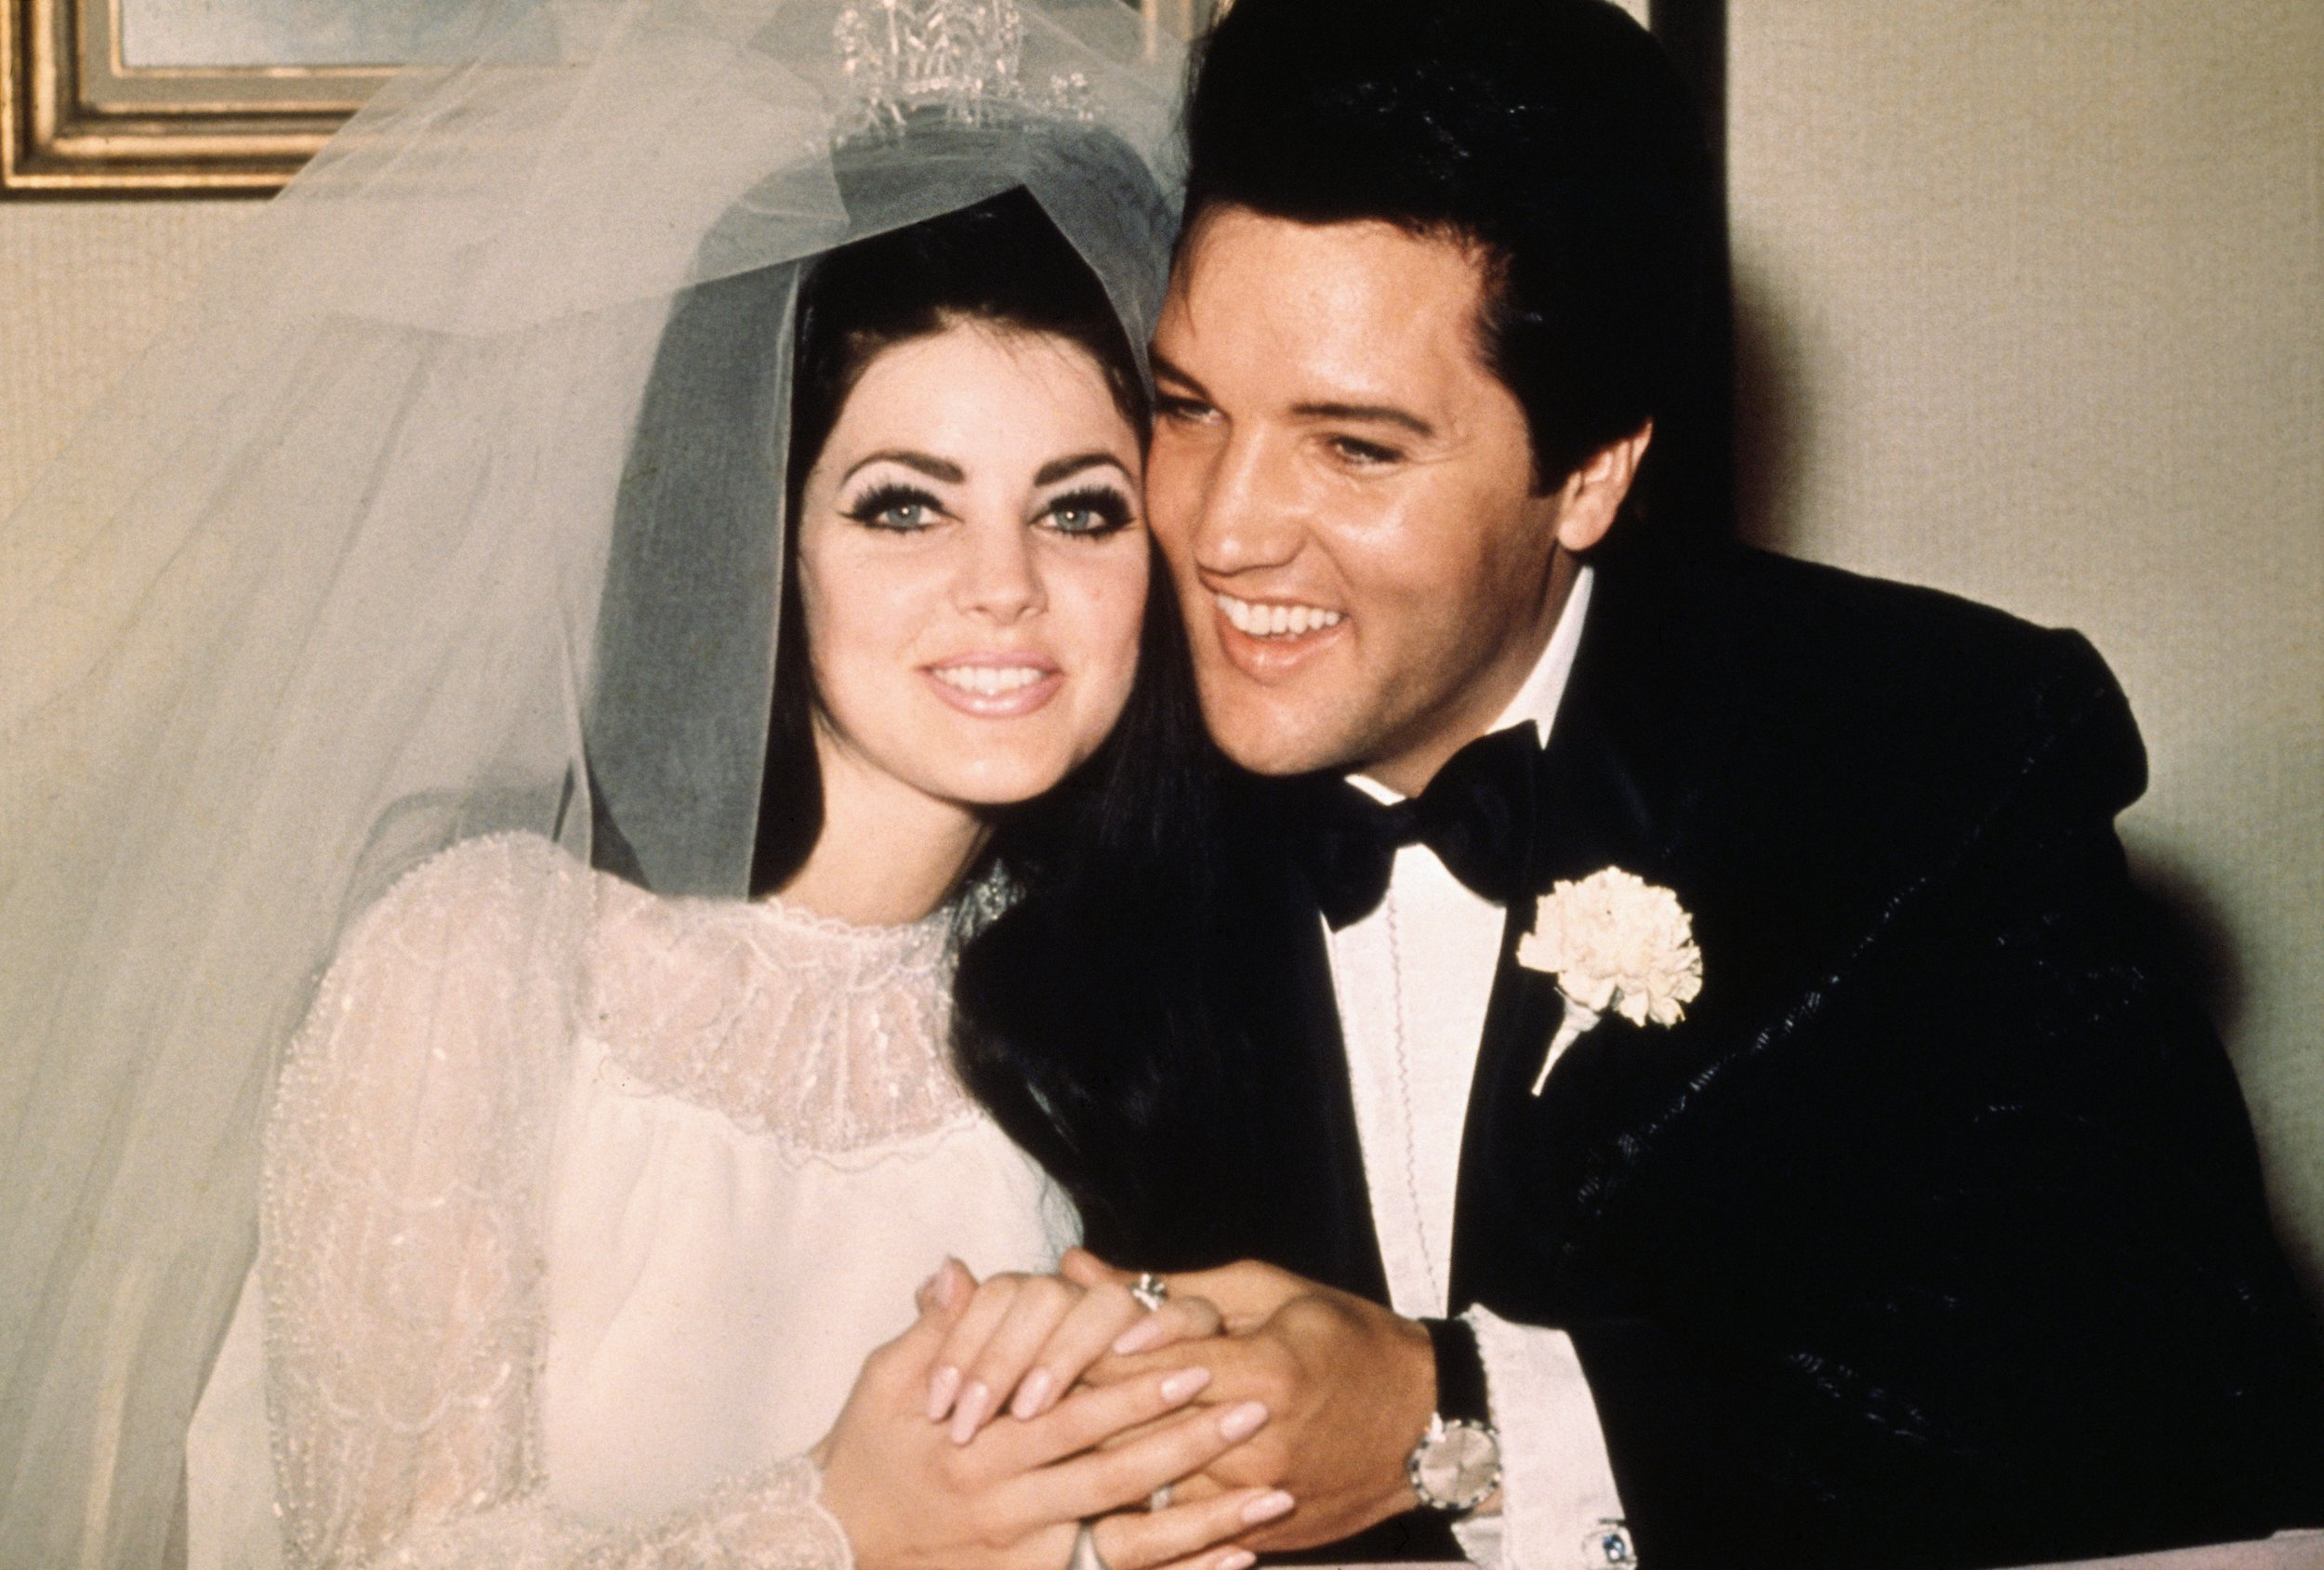 (Original Caption) Las Vegas, Nev..Entertainer, Elvis Presley sits cheek to cheek wit his bride, the former Priscilla Ann Beaulieu, following their wedding May 1, 1967.